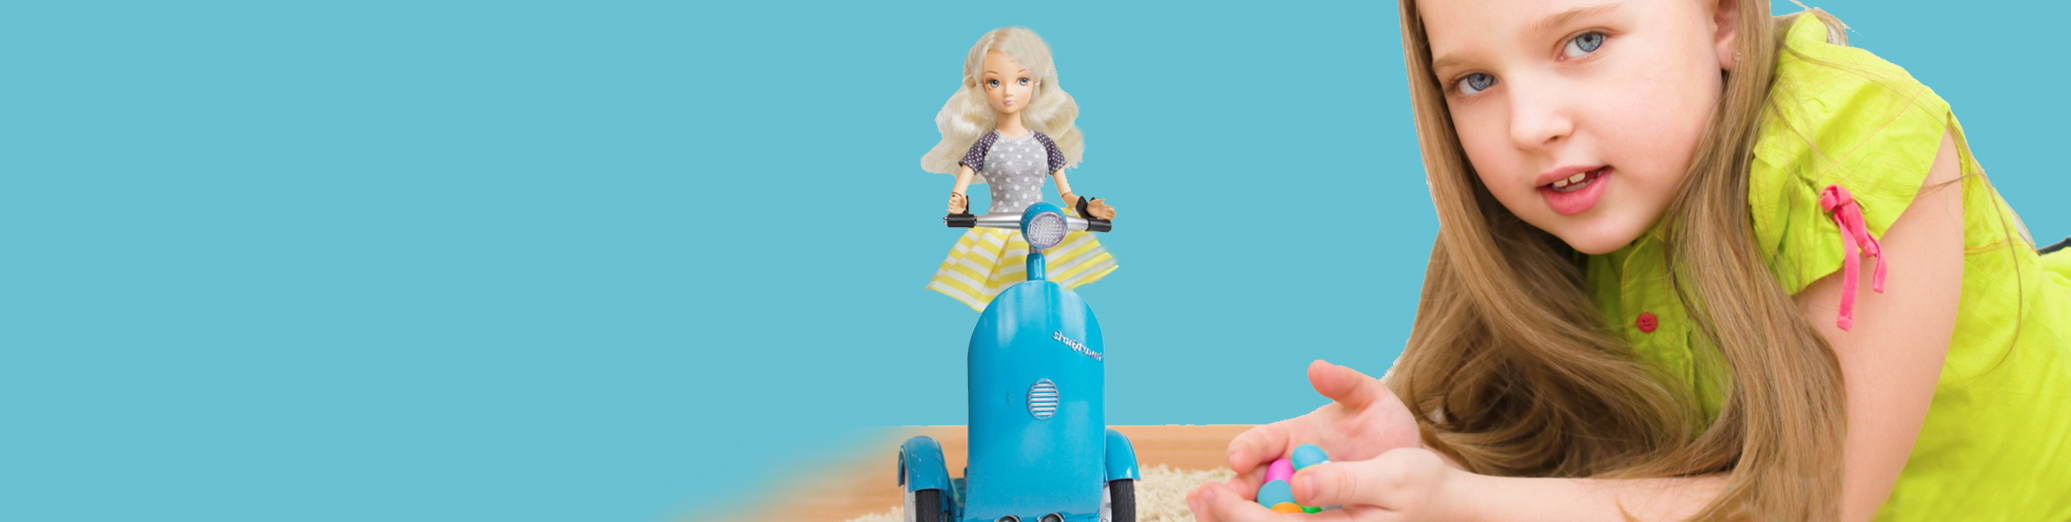 Success story - SmartGurlz: IoT-Smart toy with mobile application